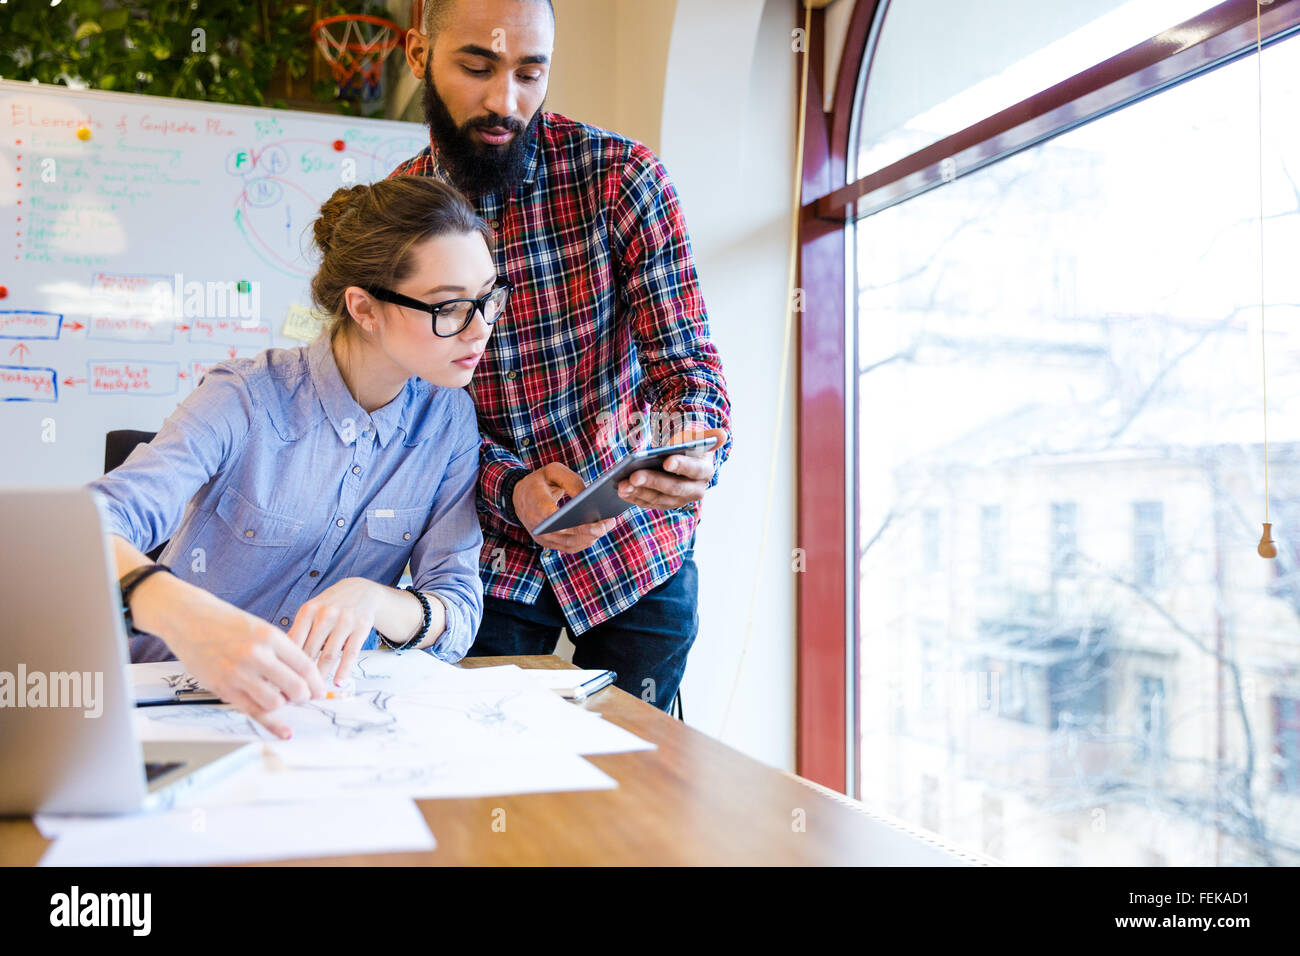 Two young woman and man fashion designers working and using tablet together - Stock Image